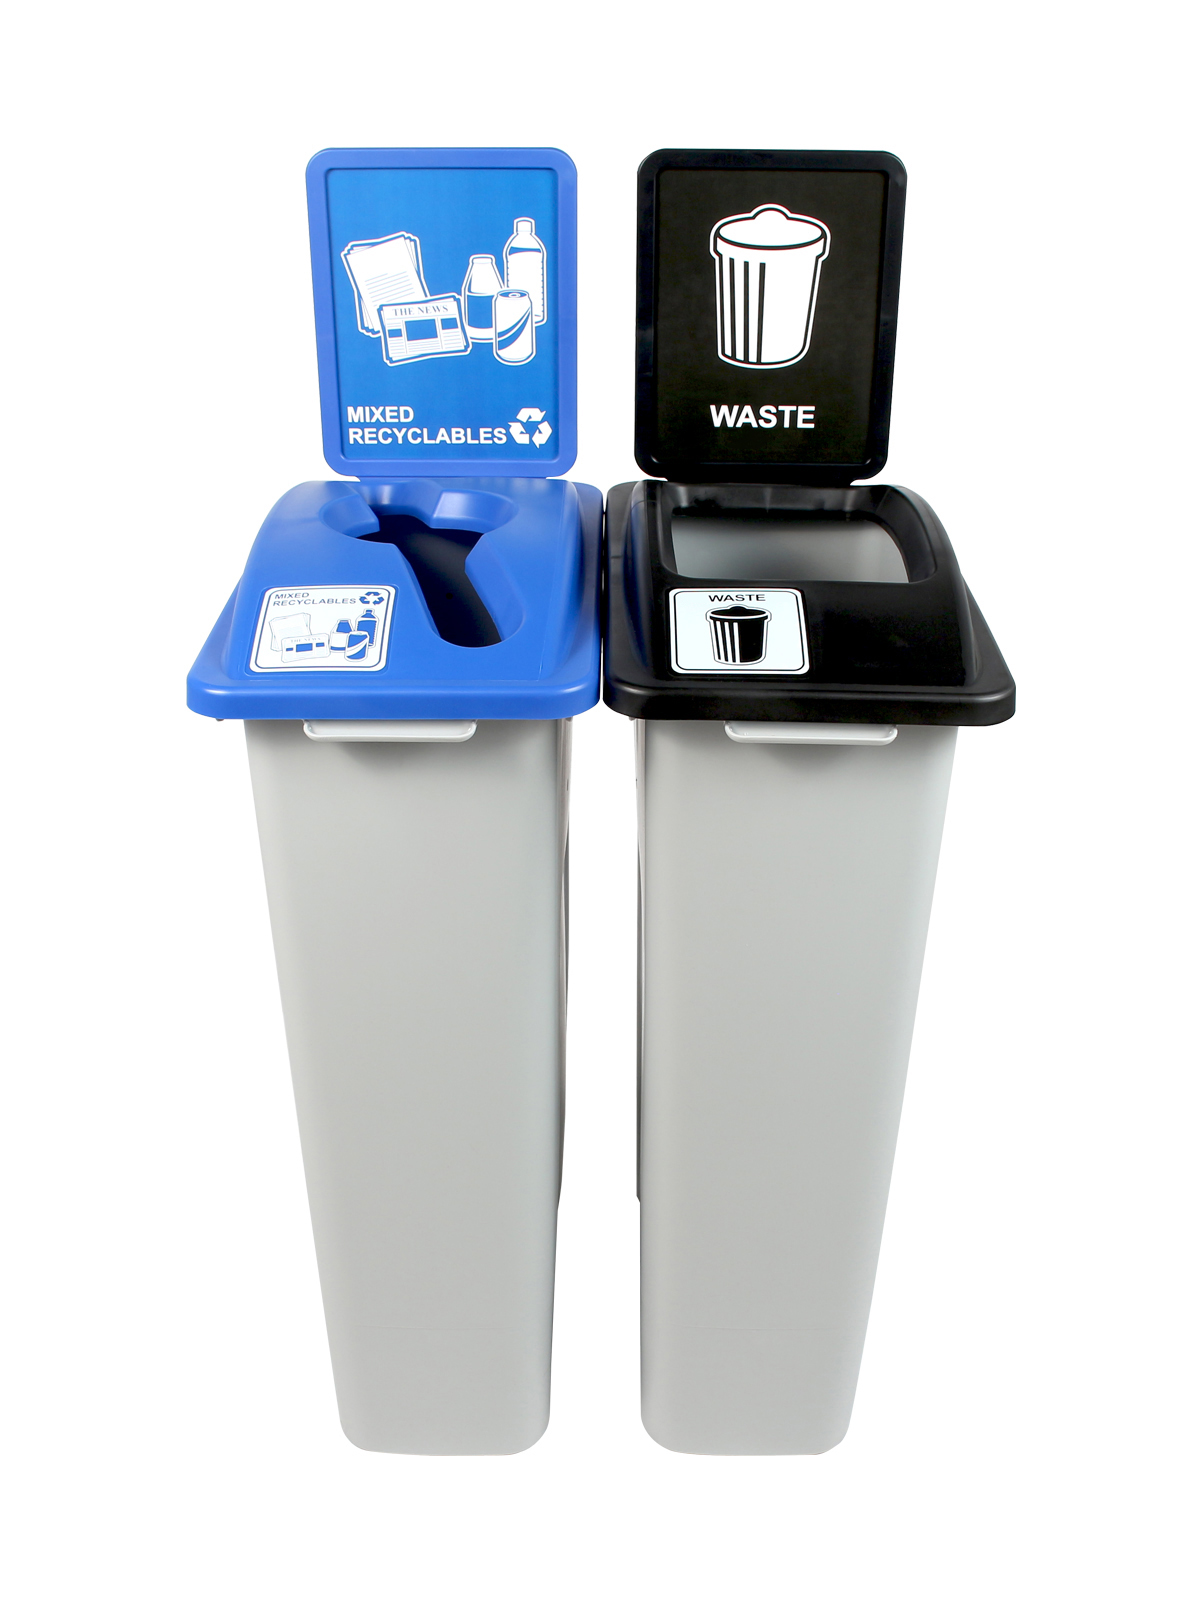 WASTE WATCHER - Double - Connecticut Compliant - Mixed Recyclables-Waste - Mixed-Full - Grey-Blue-Black